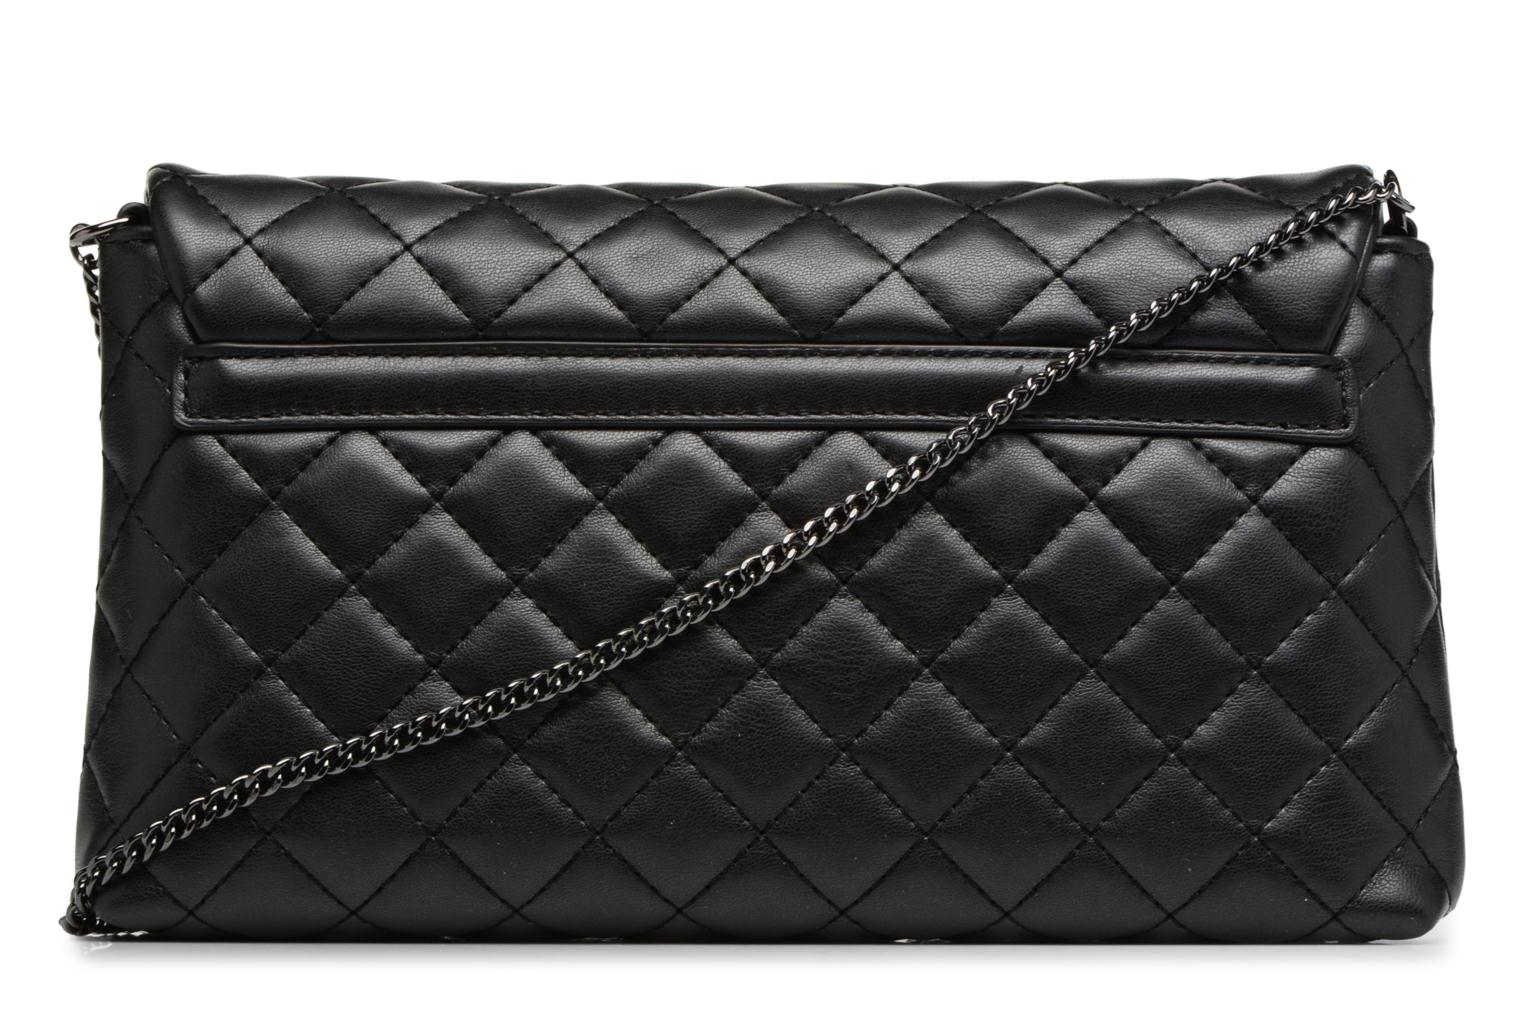 Borse Love Moschino Evening Bag Chaine Quilted Nero immagine frontale